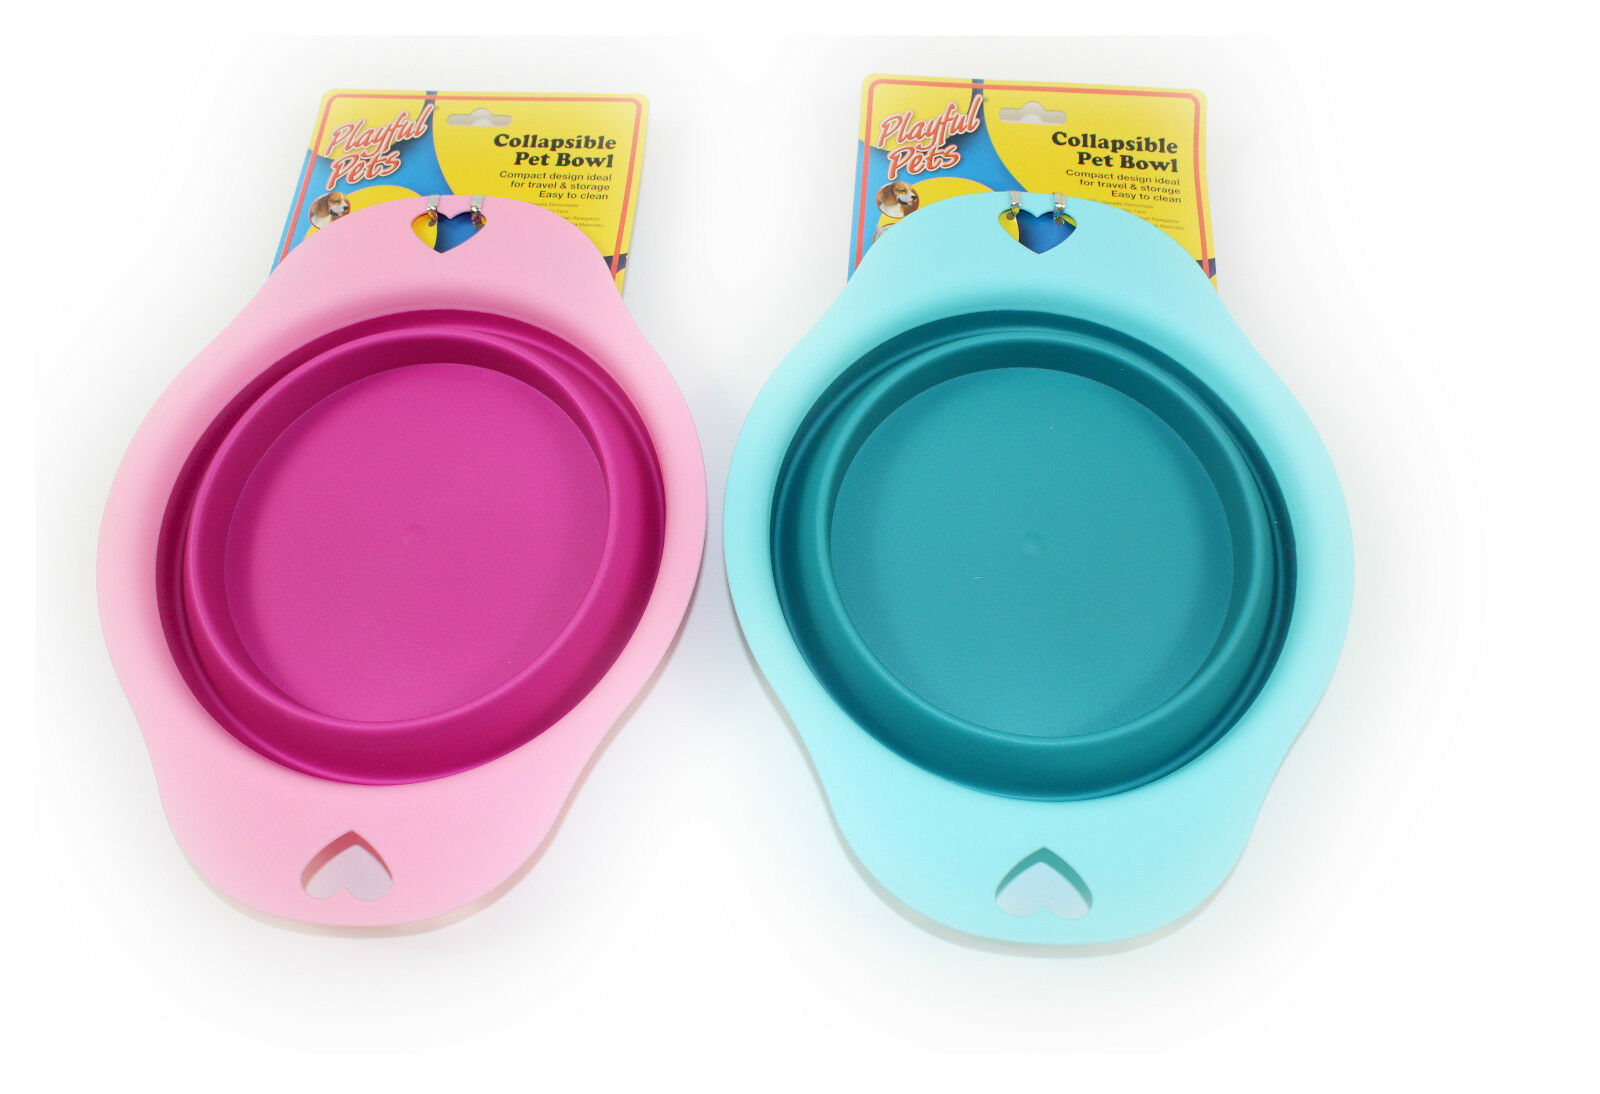 Collapsible Pet Bowl, Dog, Cat, Travel, Camping, Water, Food, Blue, Pink